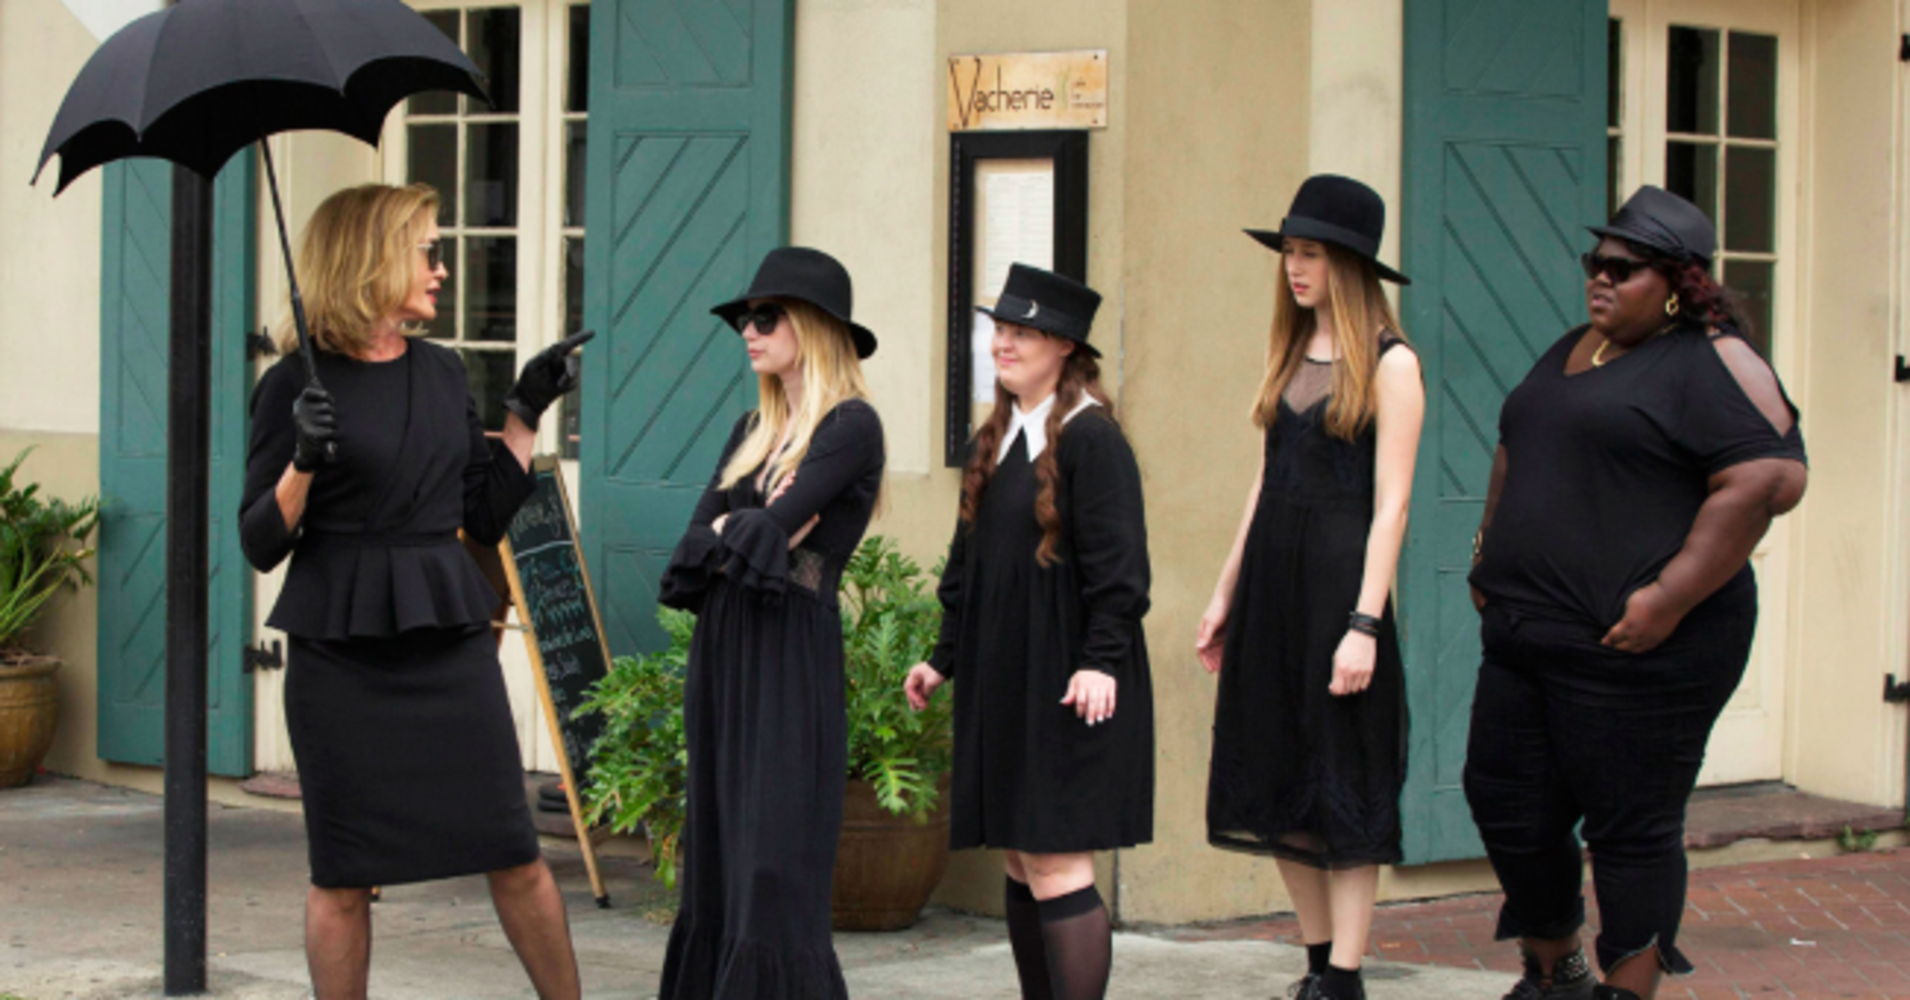 american-horror-story-coven-crossover-murder-house-coven